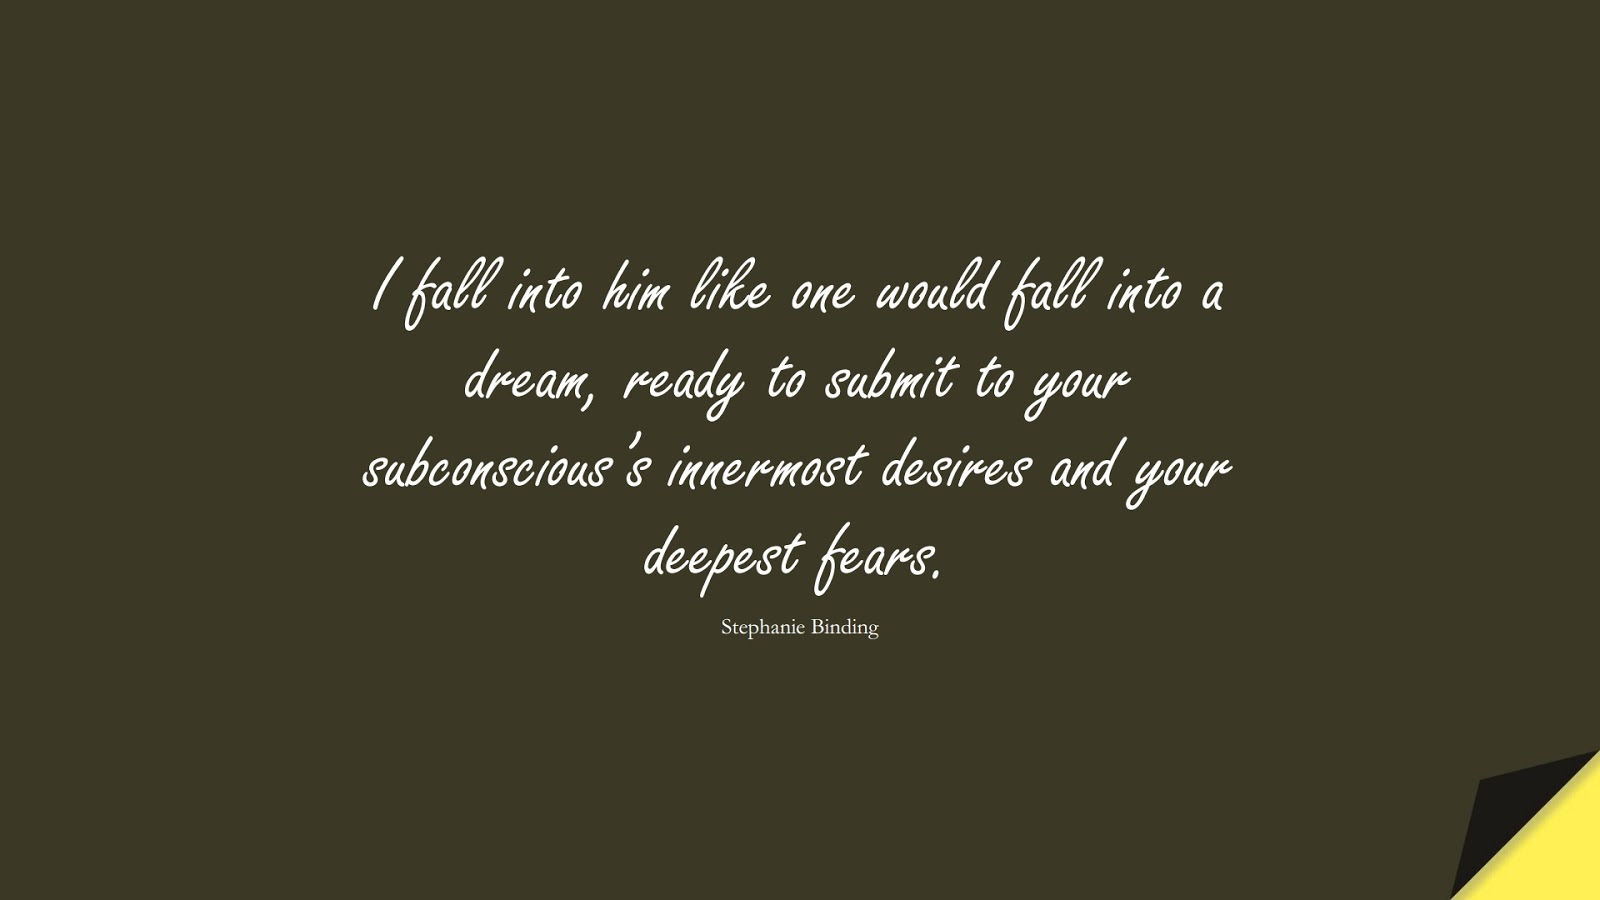 I fall into him like one would fall into a dream, ready to submit to your subconscious's innermost desires and your deepest fears. (Stephanie Binding);  #LoveQuotes